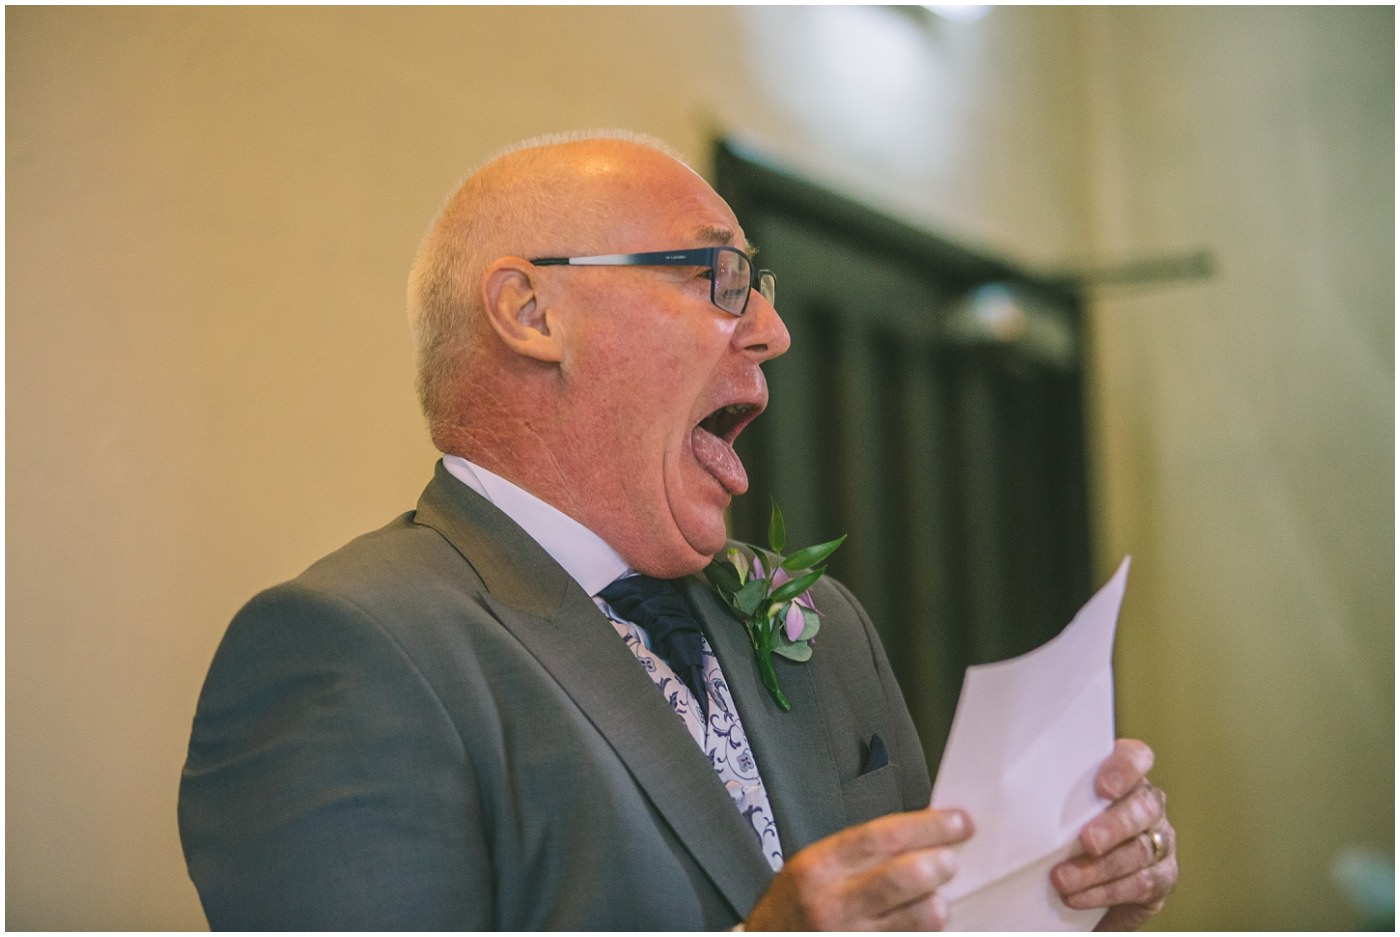 Father of the bride gets over excited during his speech